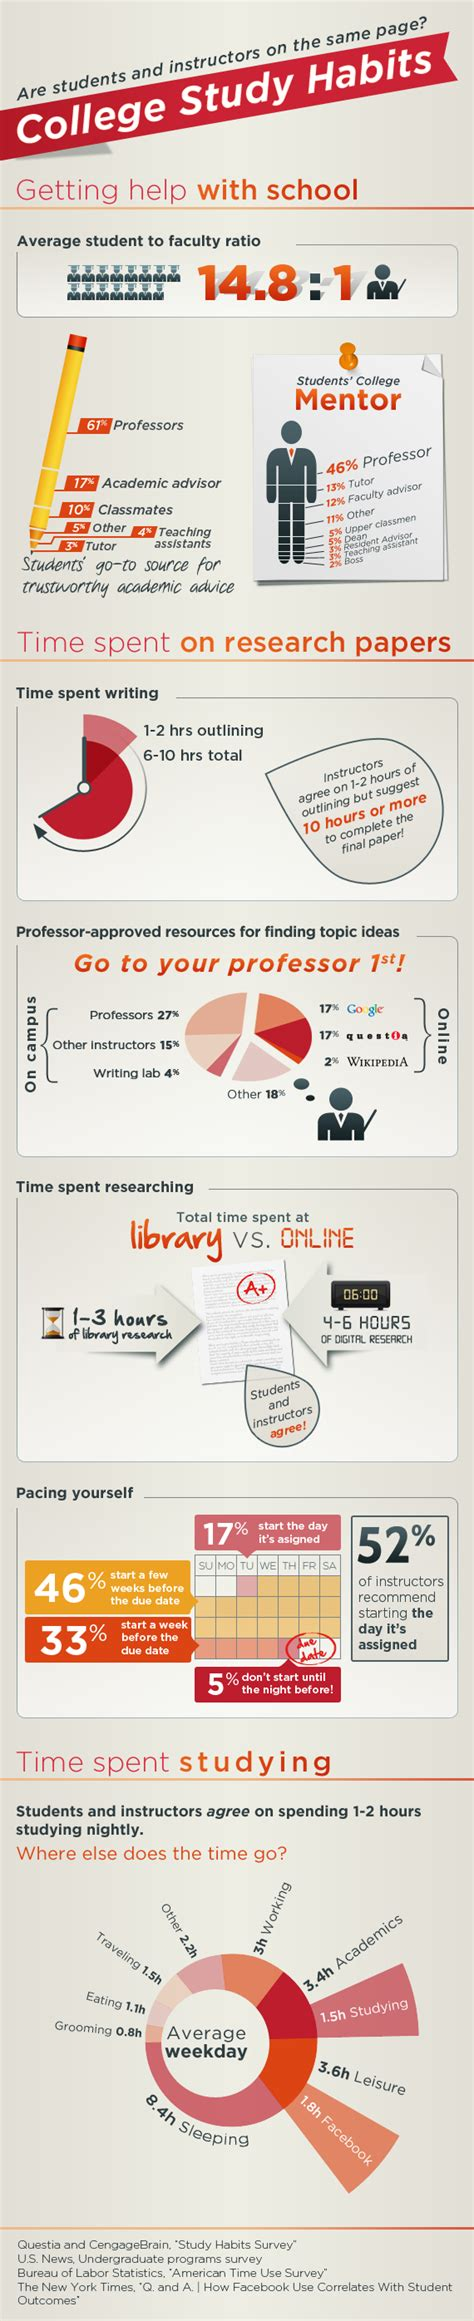 research paper about study habits questia celebrates site relaunch with tips for perfecting